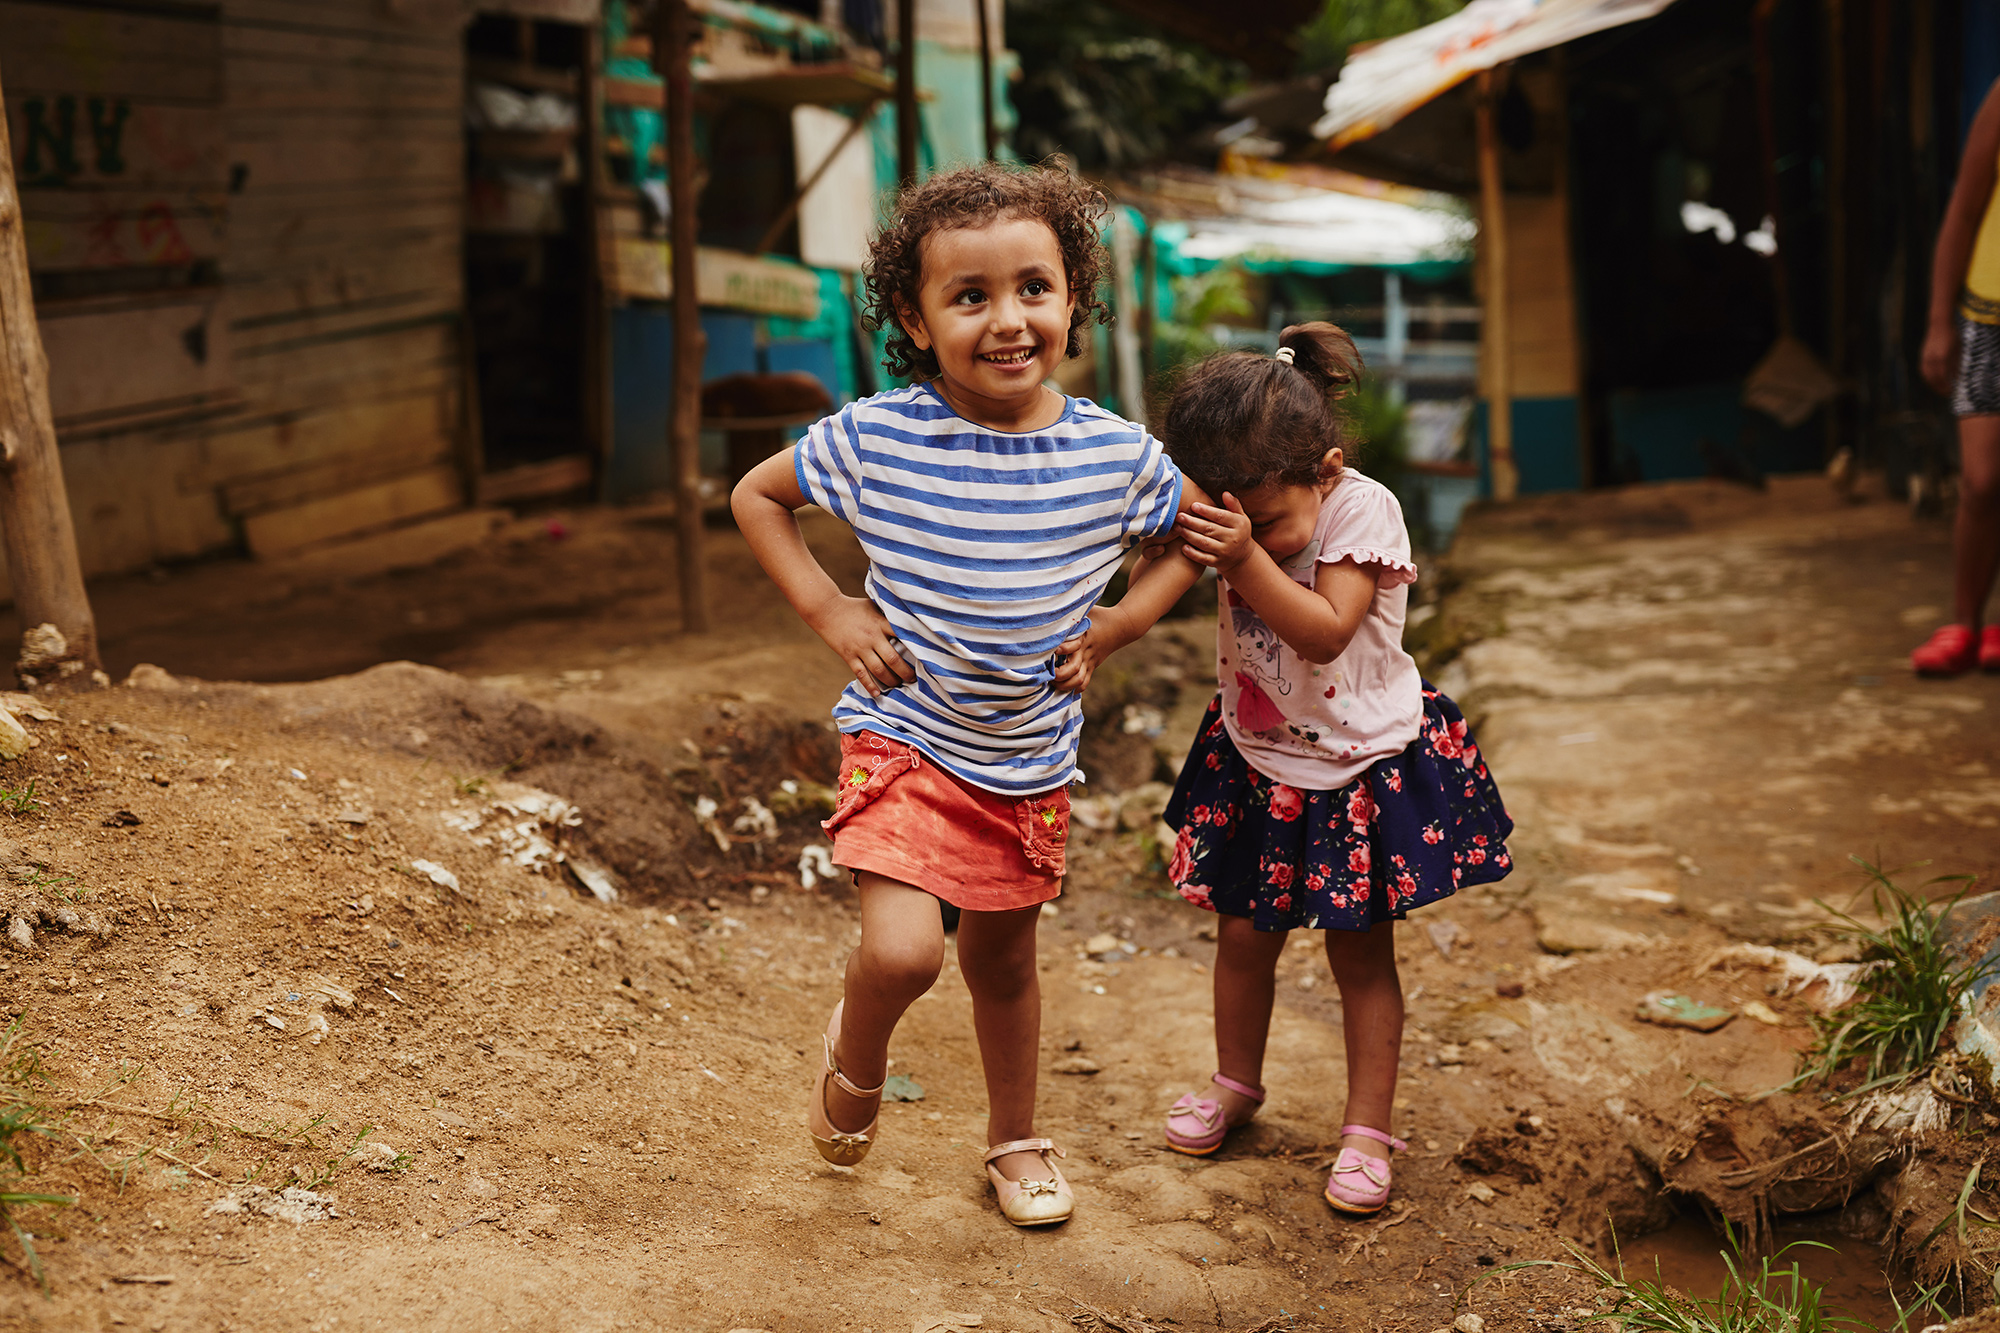 A girl and her sister play in rural Colombia